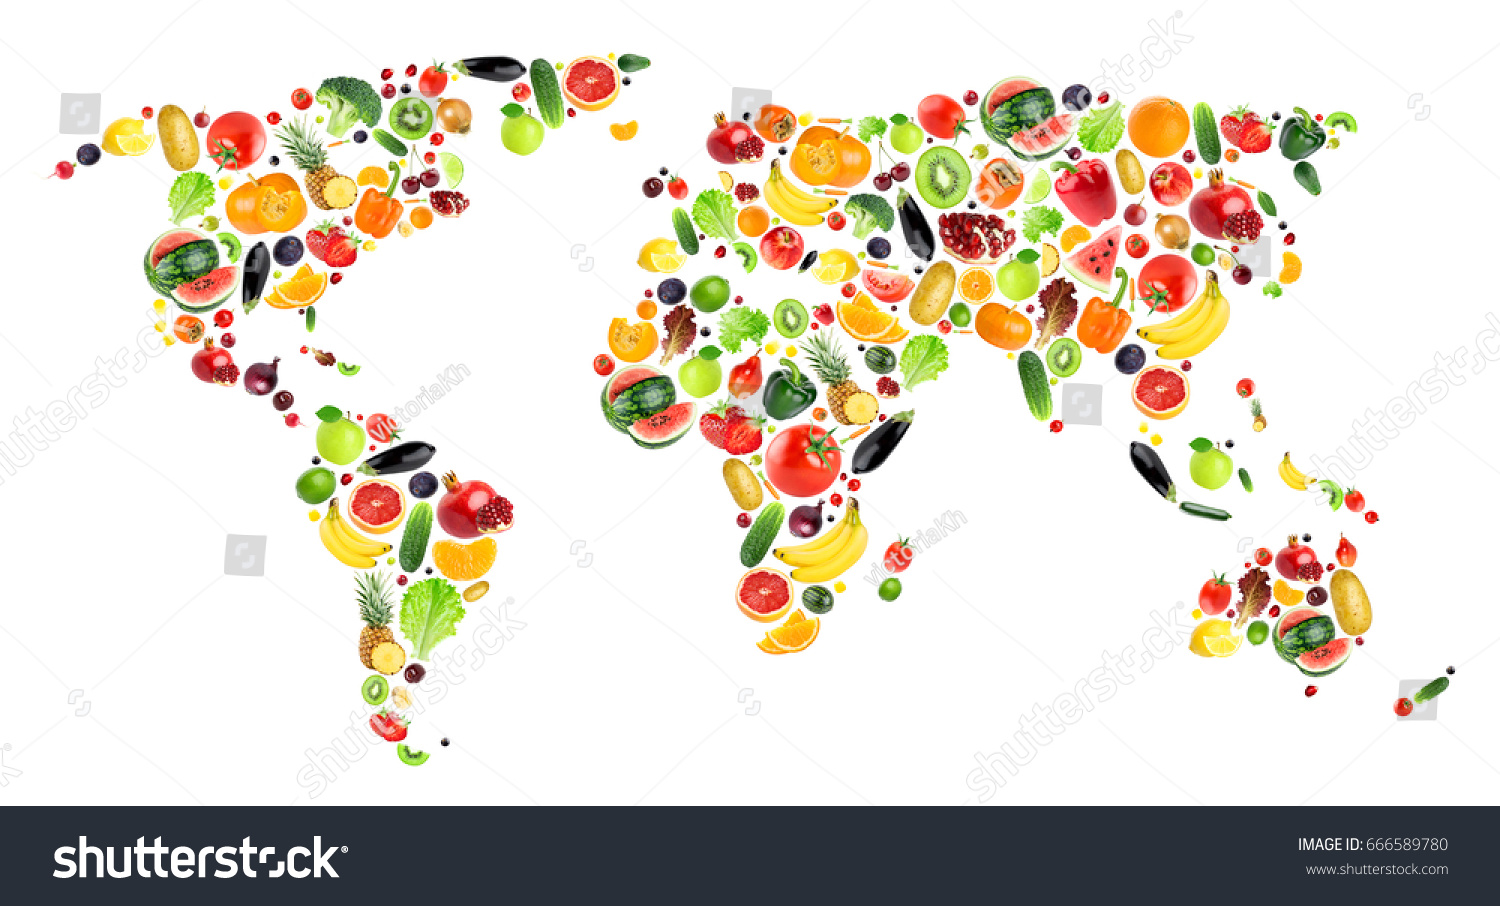 Collage fruits vegetables world map stock photo 666589780 collage of fruits and vegetables world map gumiabroncs Gallery